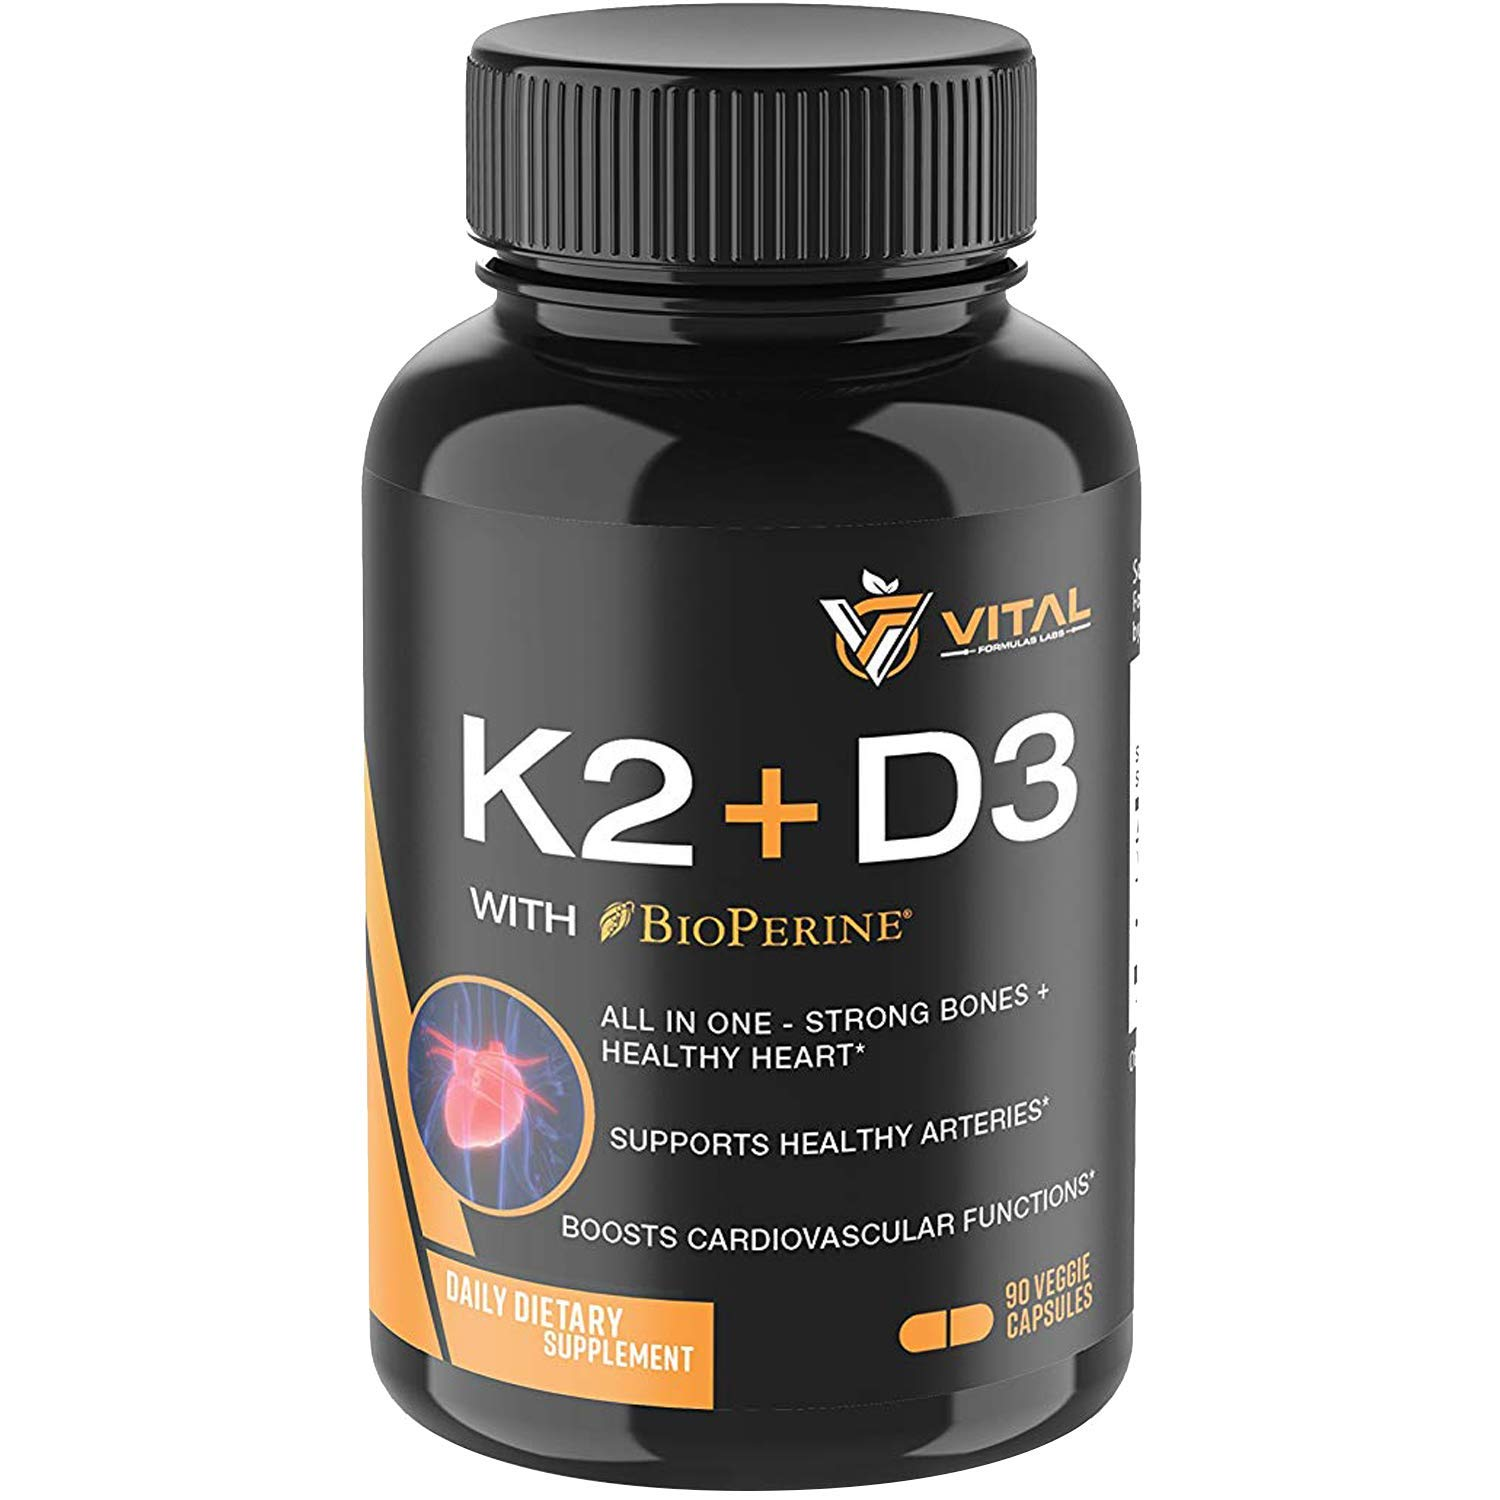 Vitamin K2 MK7 (100mcg) with Vitamin D3 (5000 IU) - 3-Months Supply of Vitamin D & K Complex for Healthy Heart and Strong Bones - 90 Veggie Caps with BioPerine®